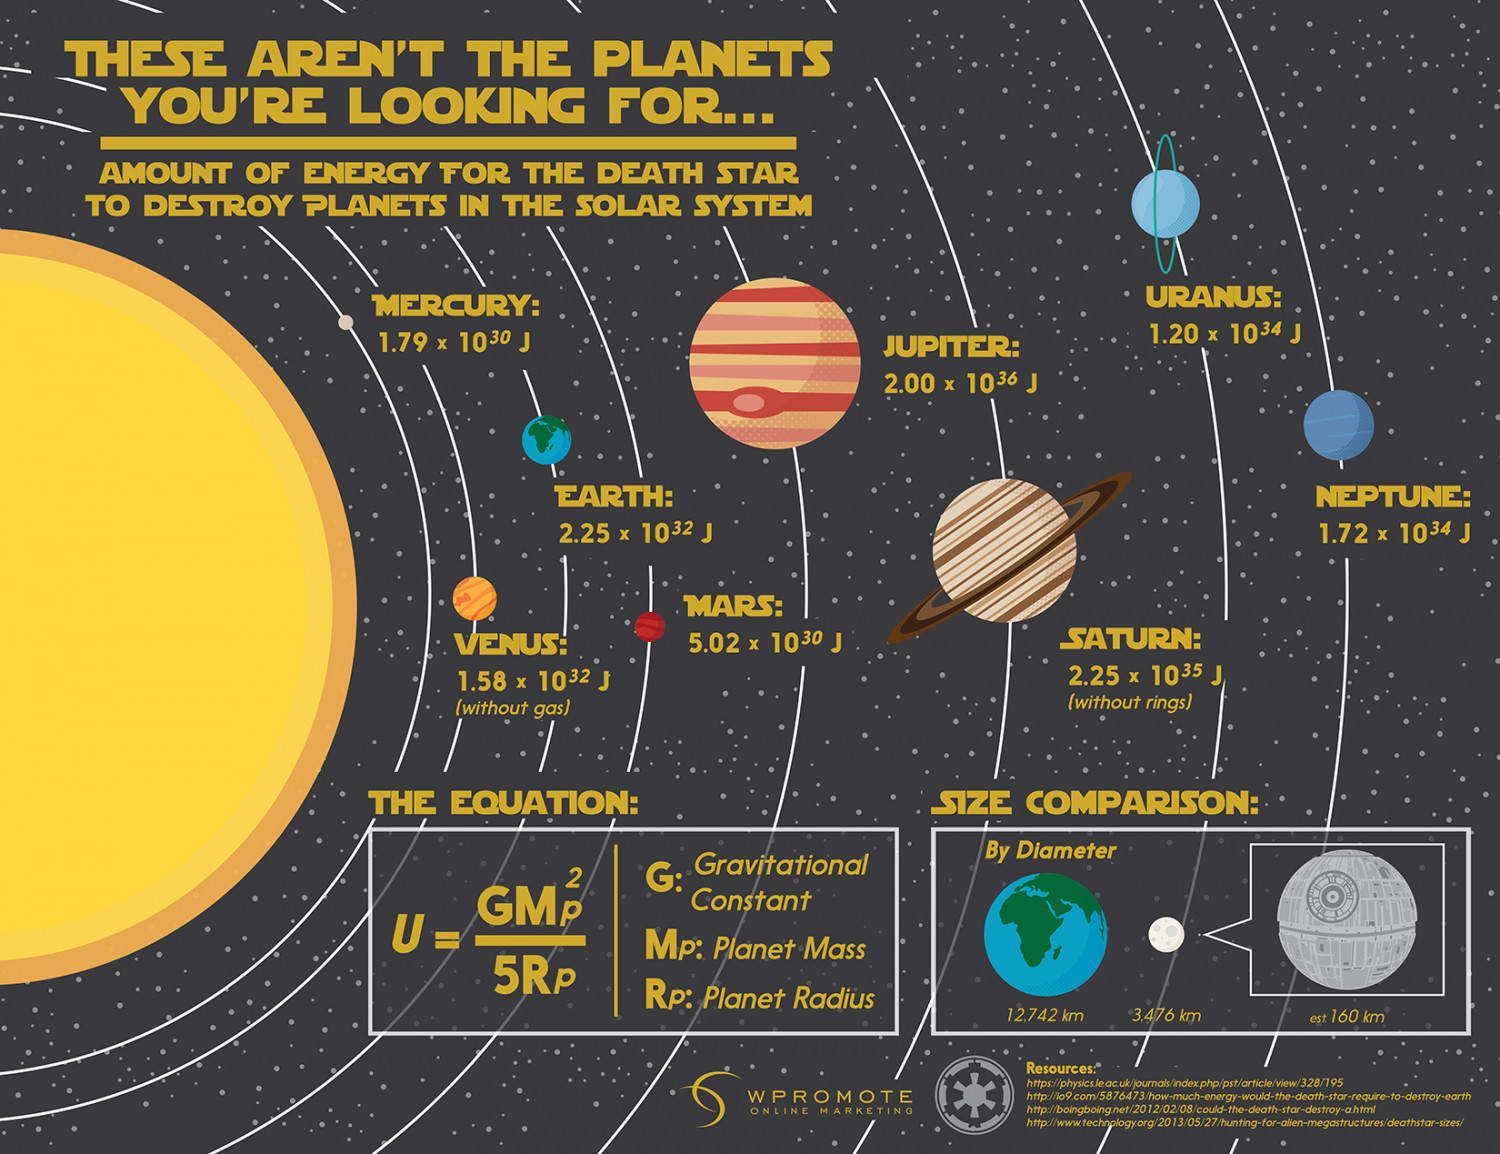 If The Death Star Were Real, Could it Destroy Earth? Infographic